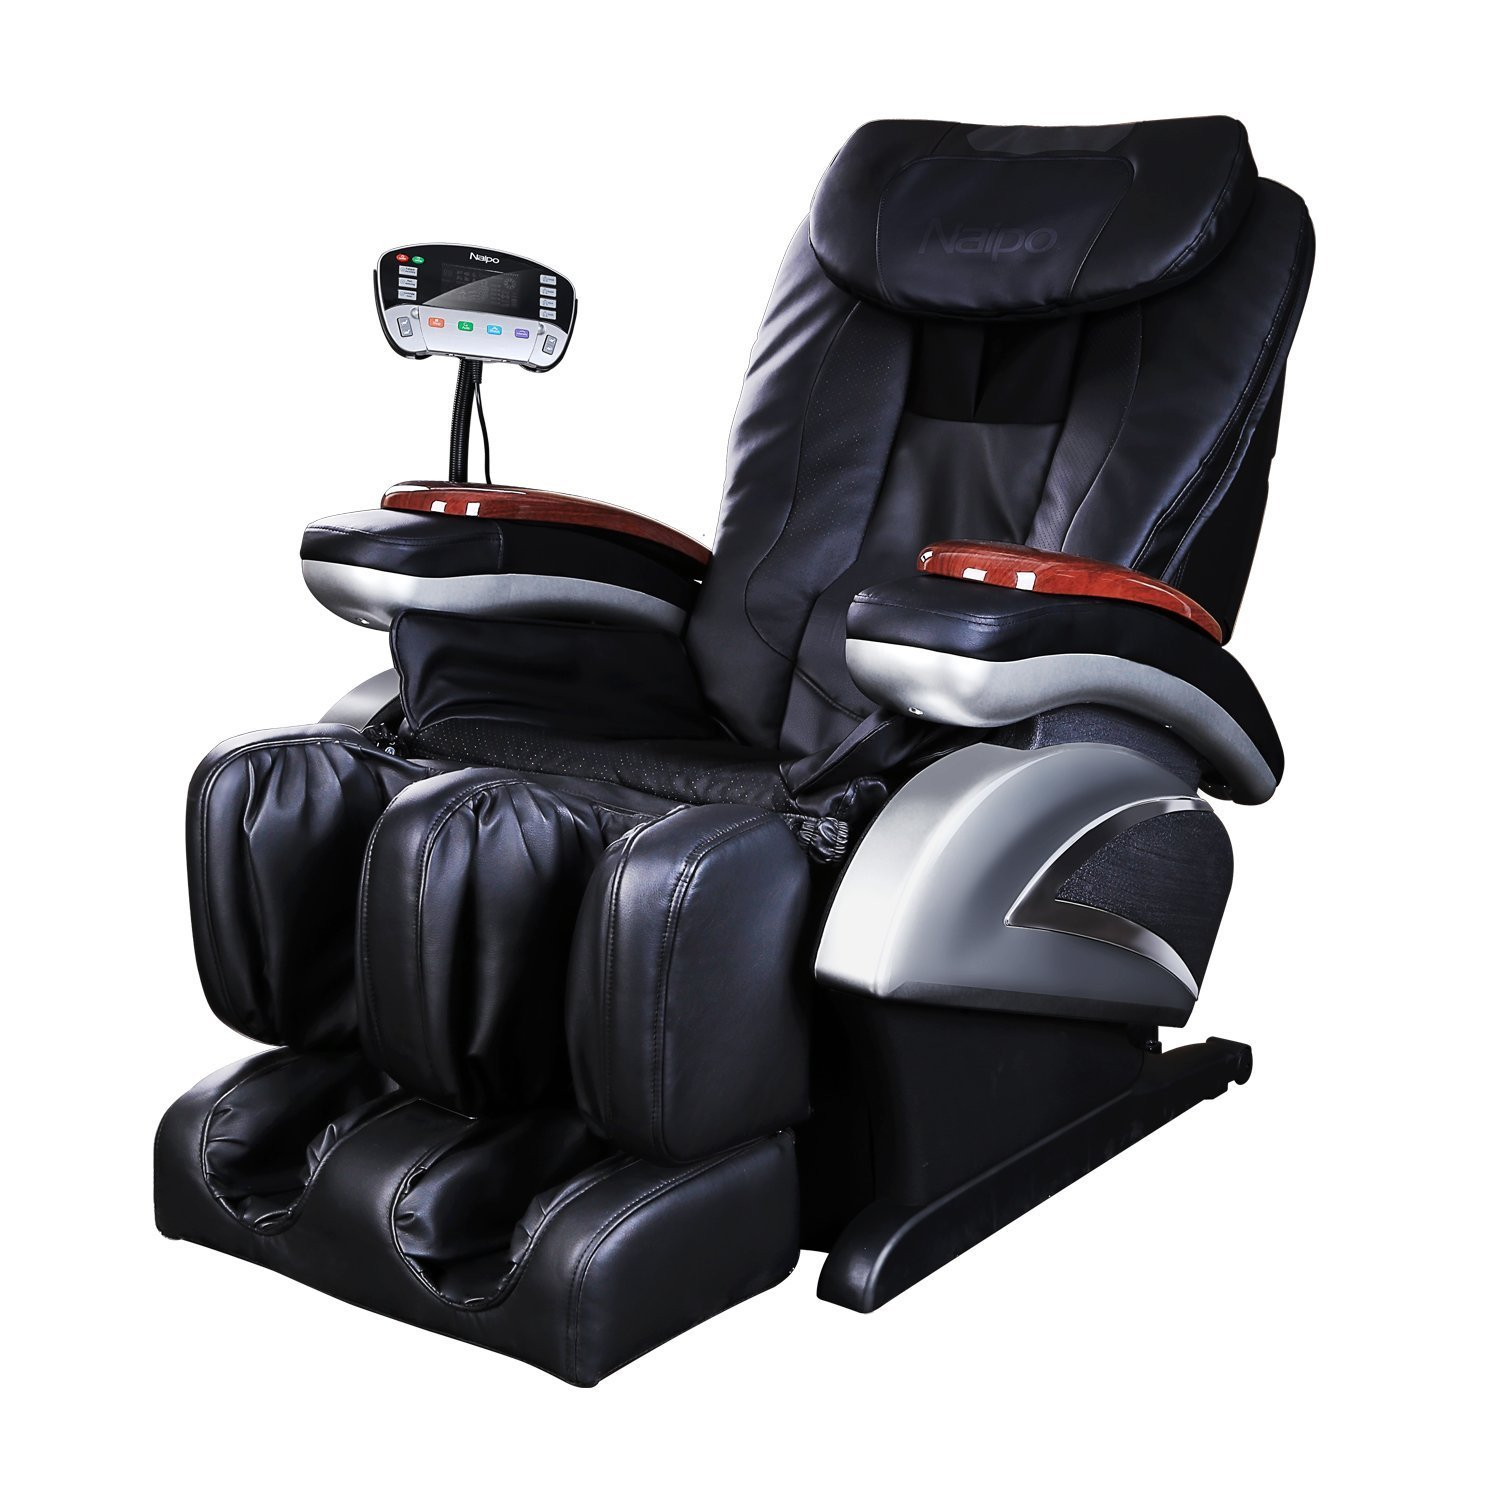 NAIPO SHIATSU MASSAGE CHAIR FOR A FULL BODY MASSAGE